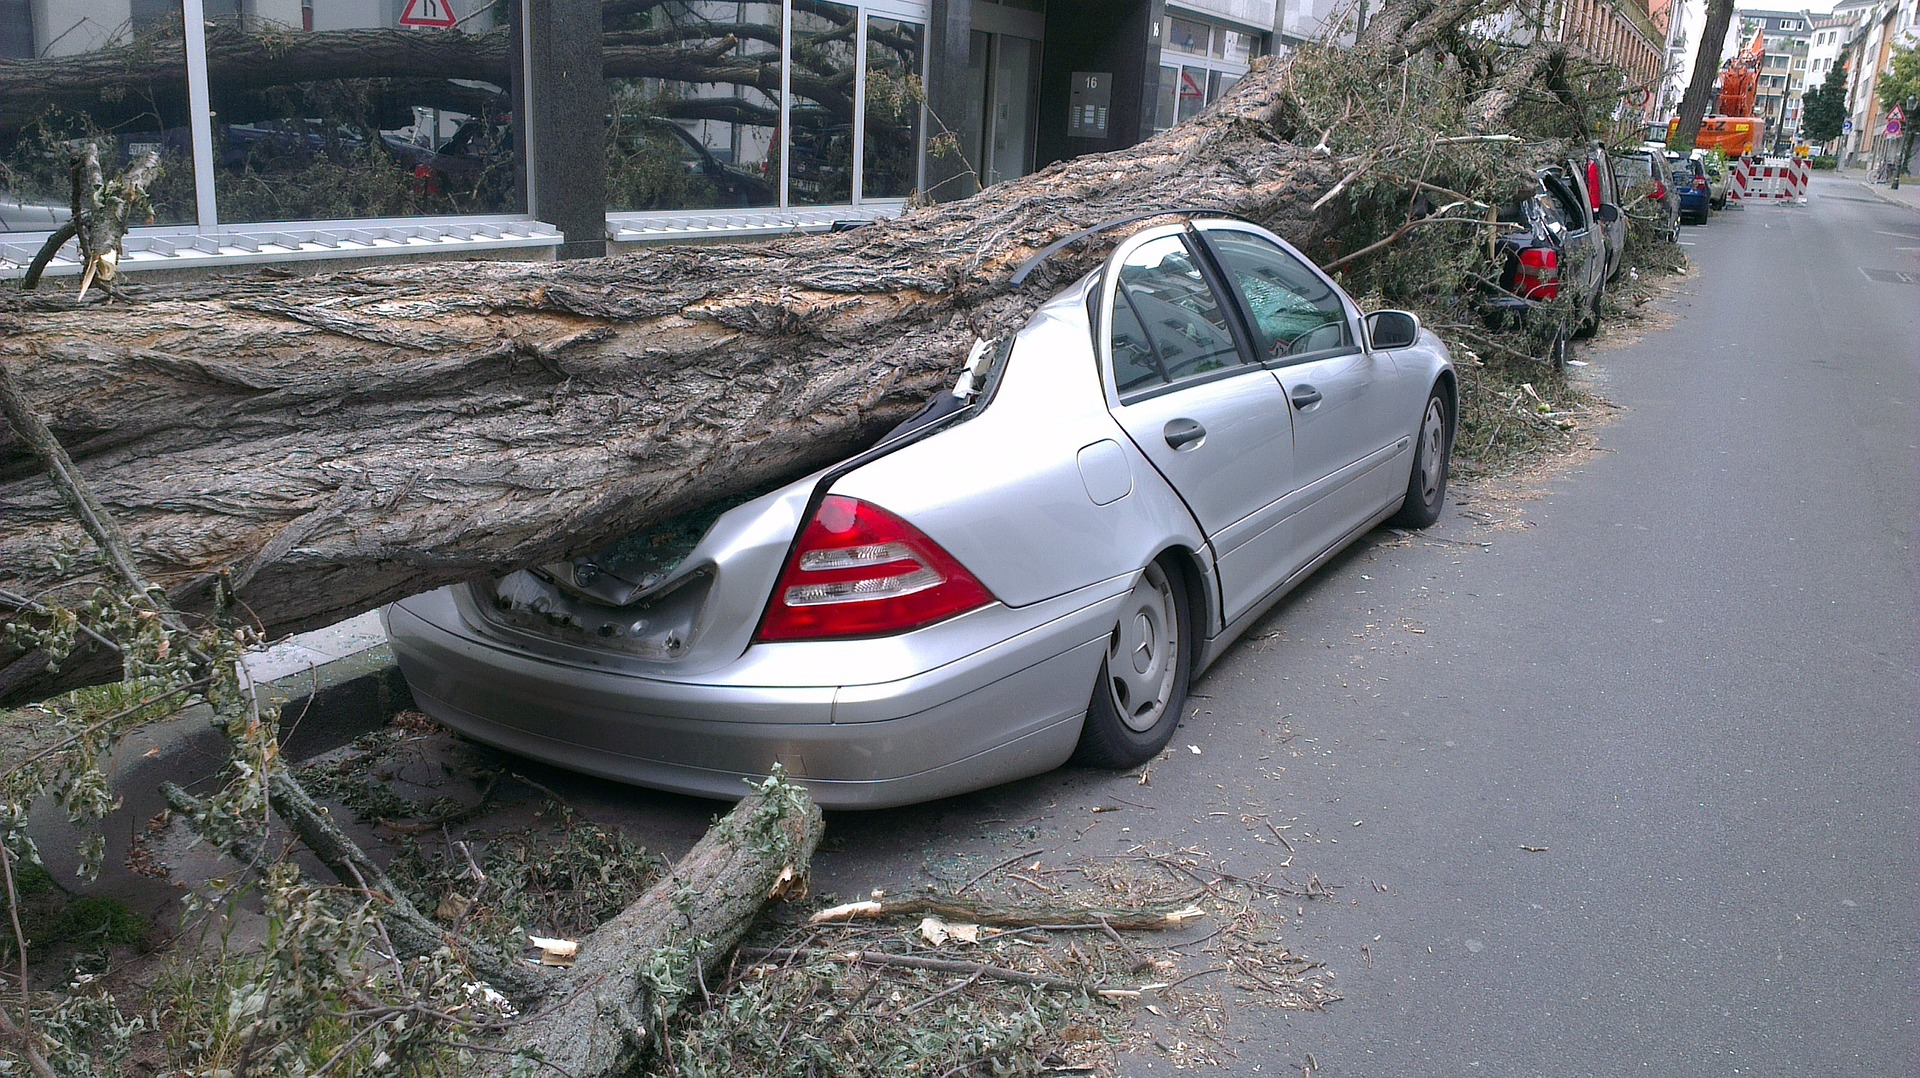 Tree crushing line of parked cars